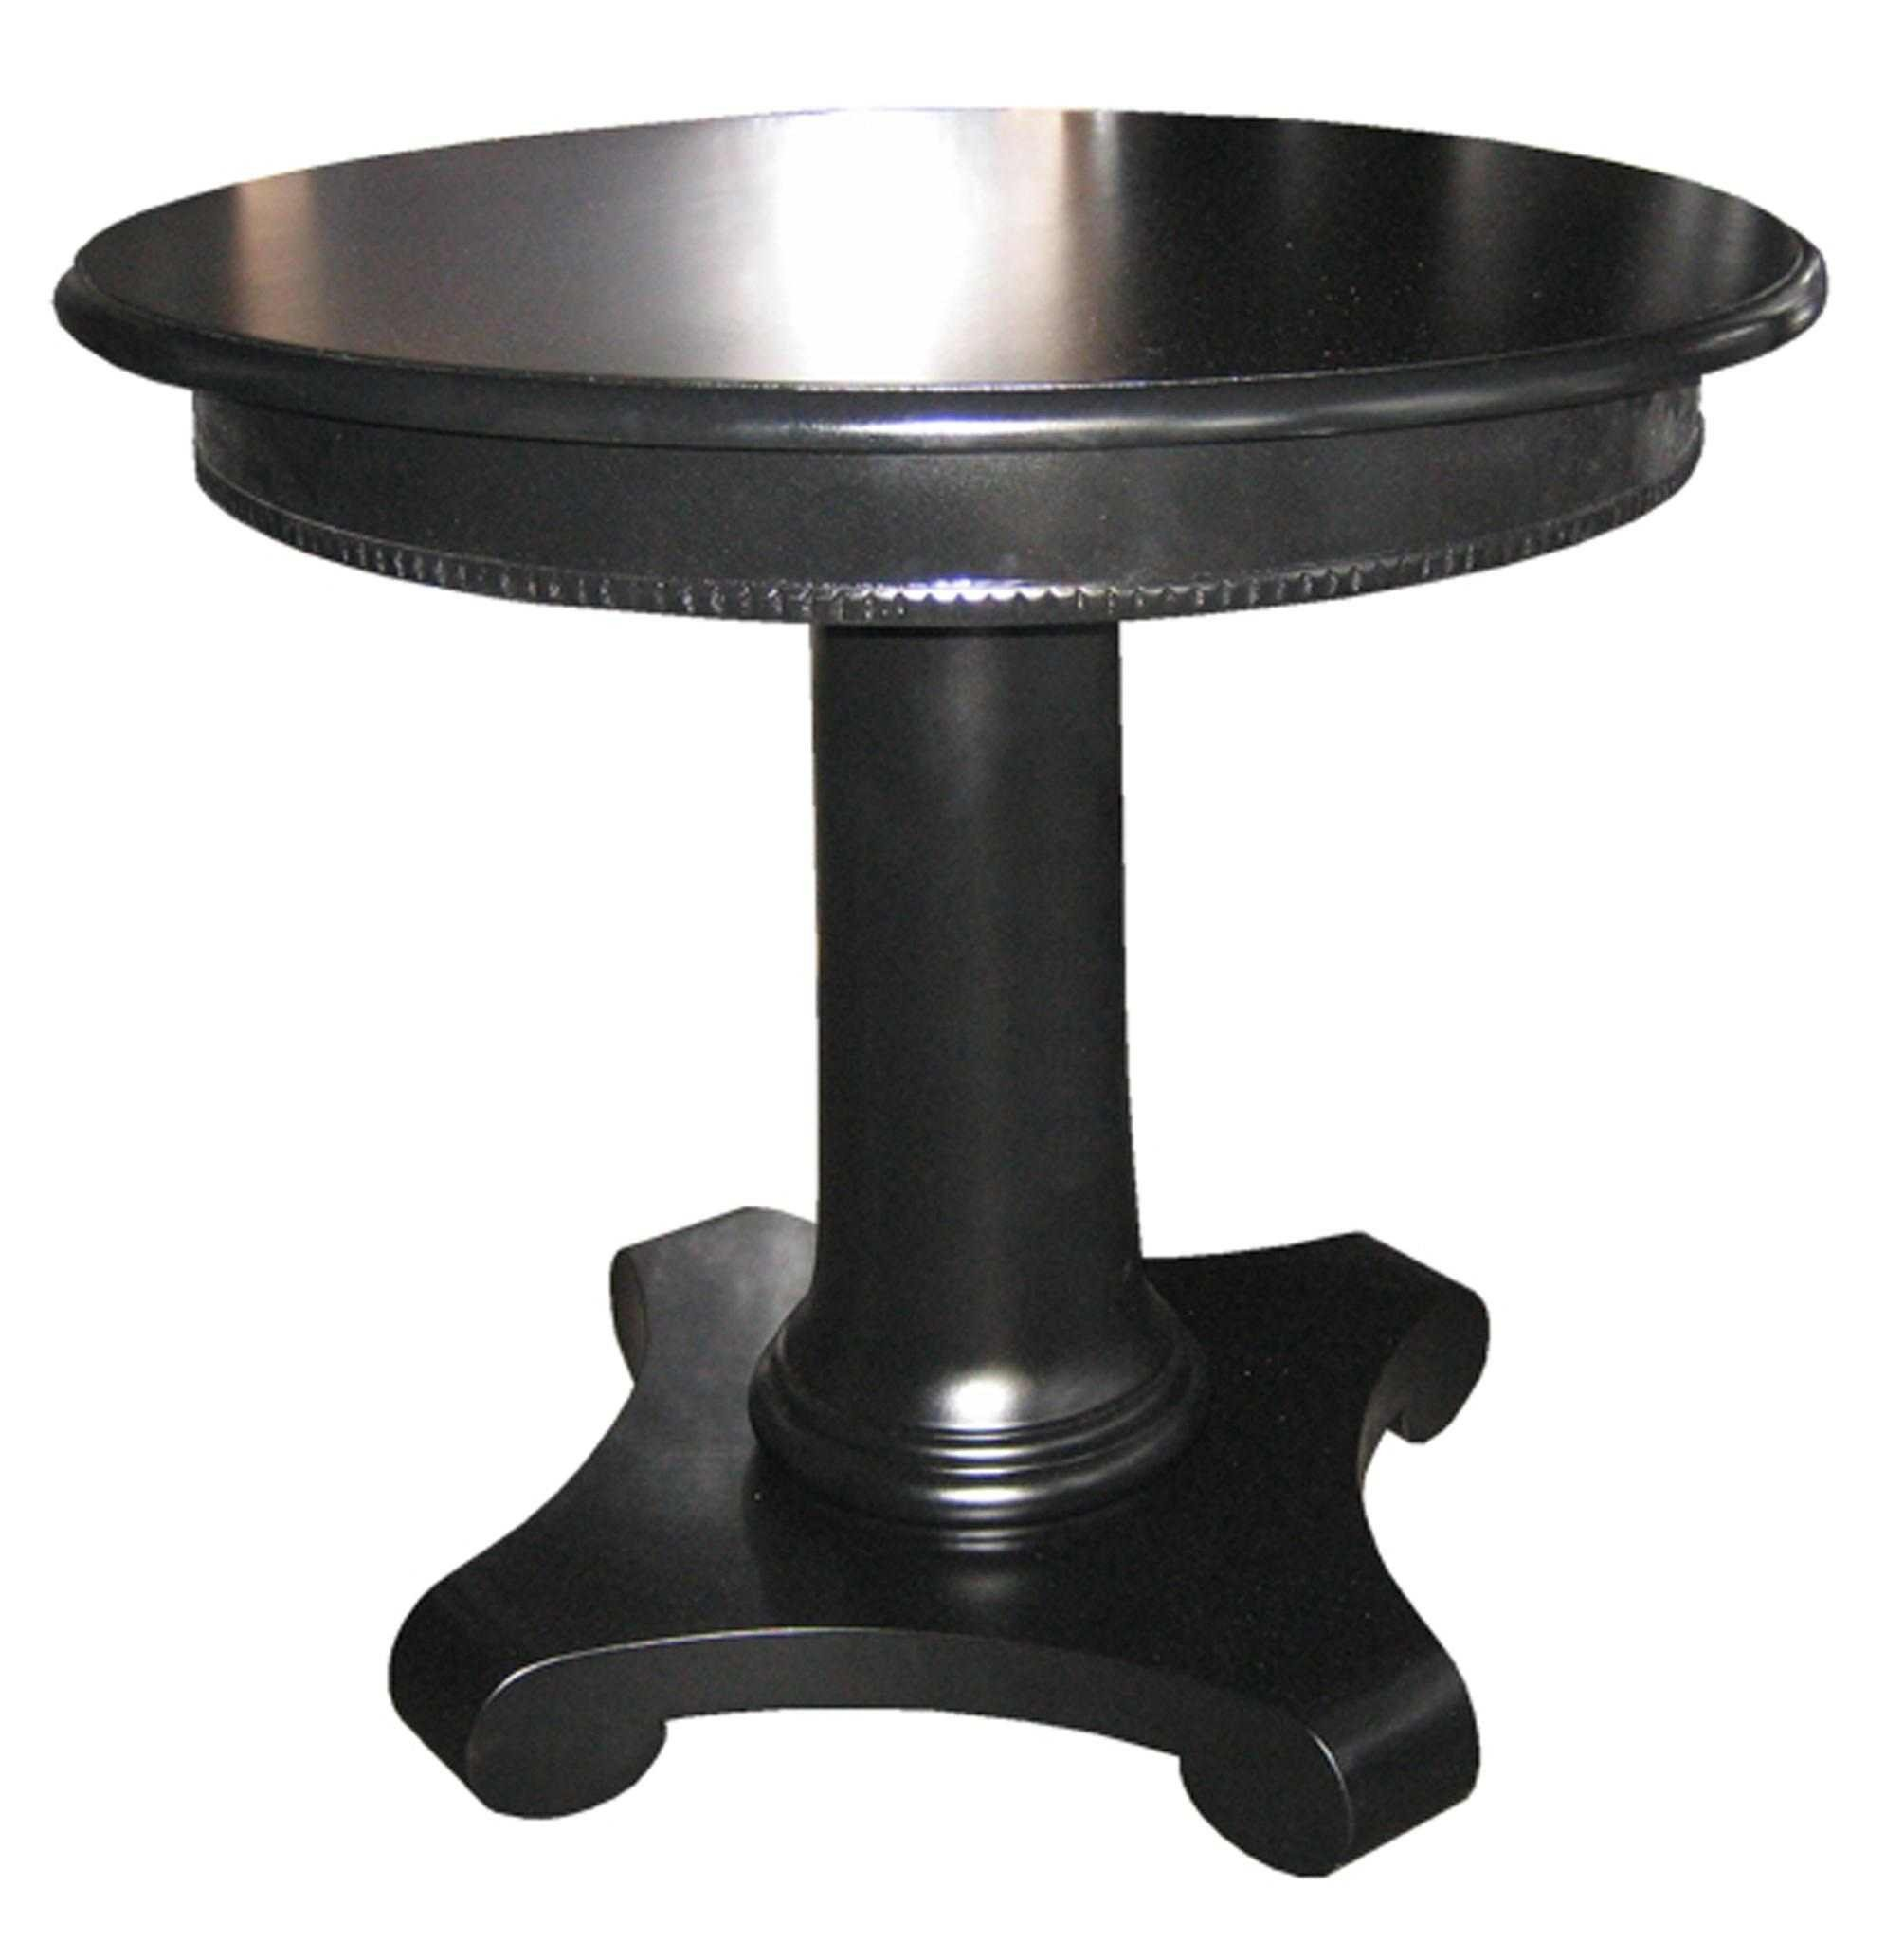 side tables mortise tenon black rond table gloss finish small round pedestal accent northern wood and glass faux marble top end light bulb brushed silver corner ikea centerpieces